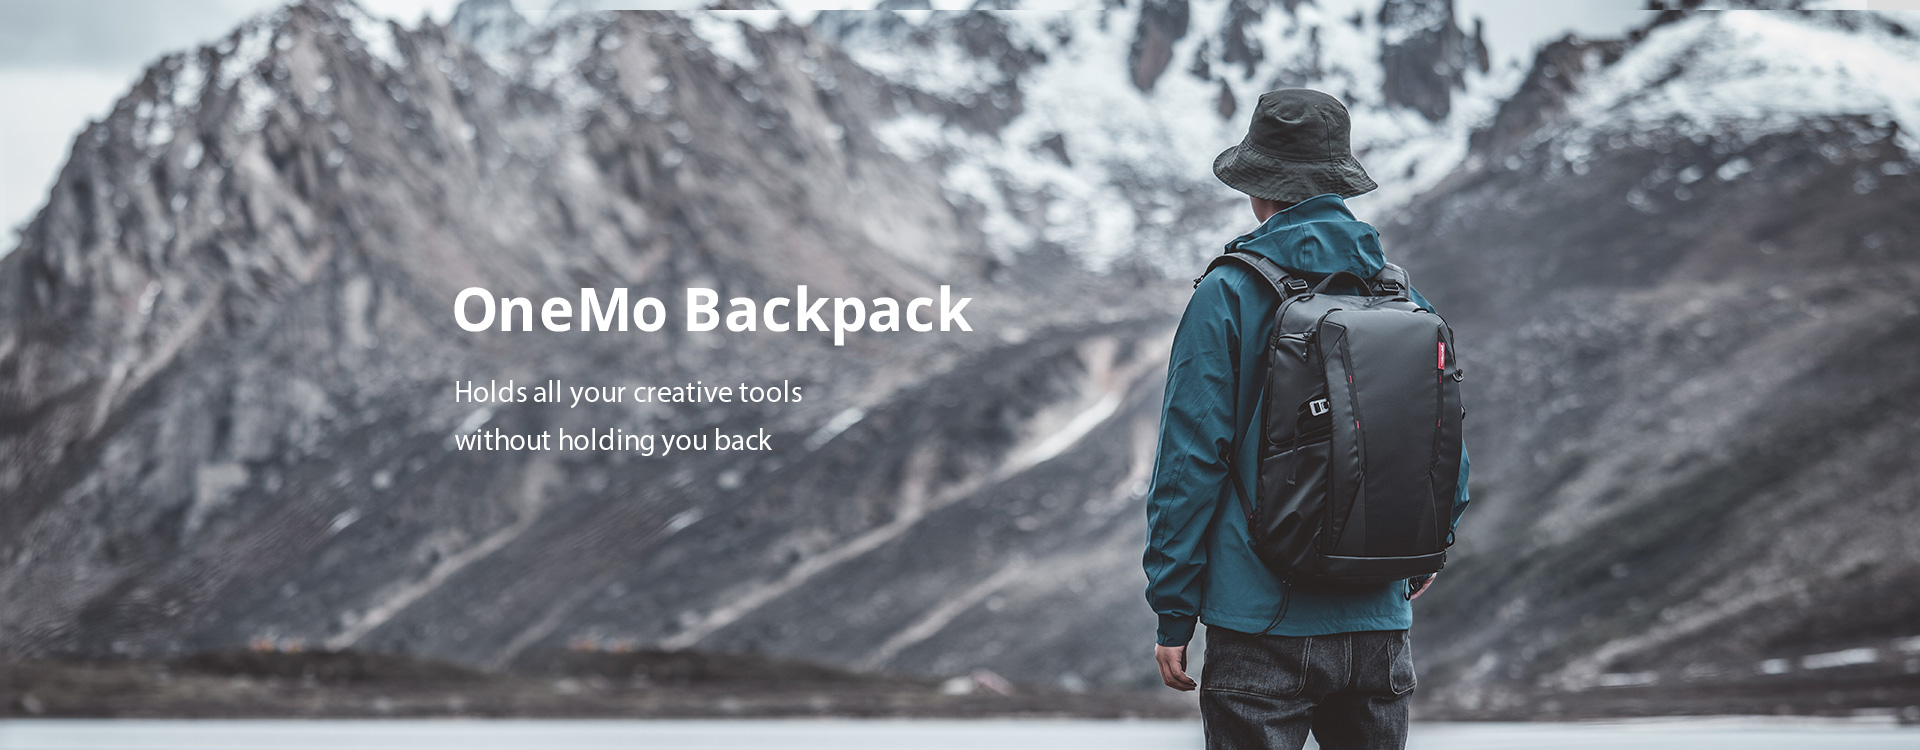 onemo-backpack1.jpg